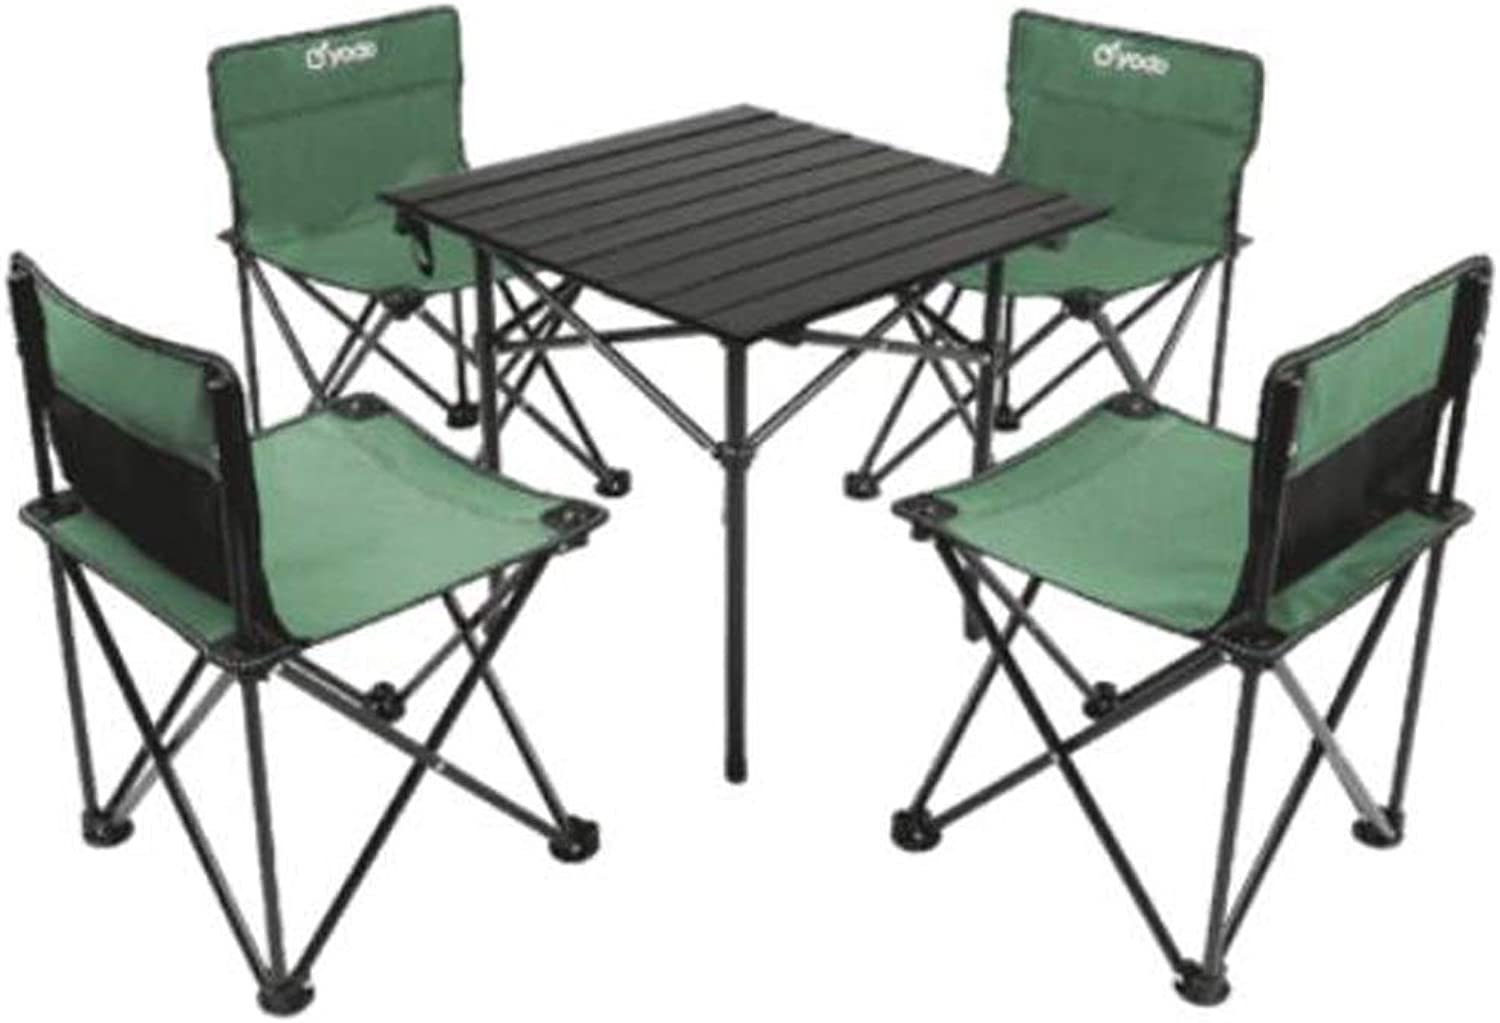 Aluminum Folding Table  Lightweight Portable Dining Table, Picnic, Travel, Outdoor Sports, 53 x 53 x 50 cm, with Folding Chairs Folding Table